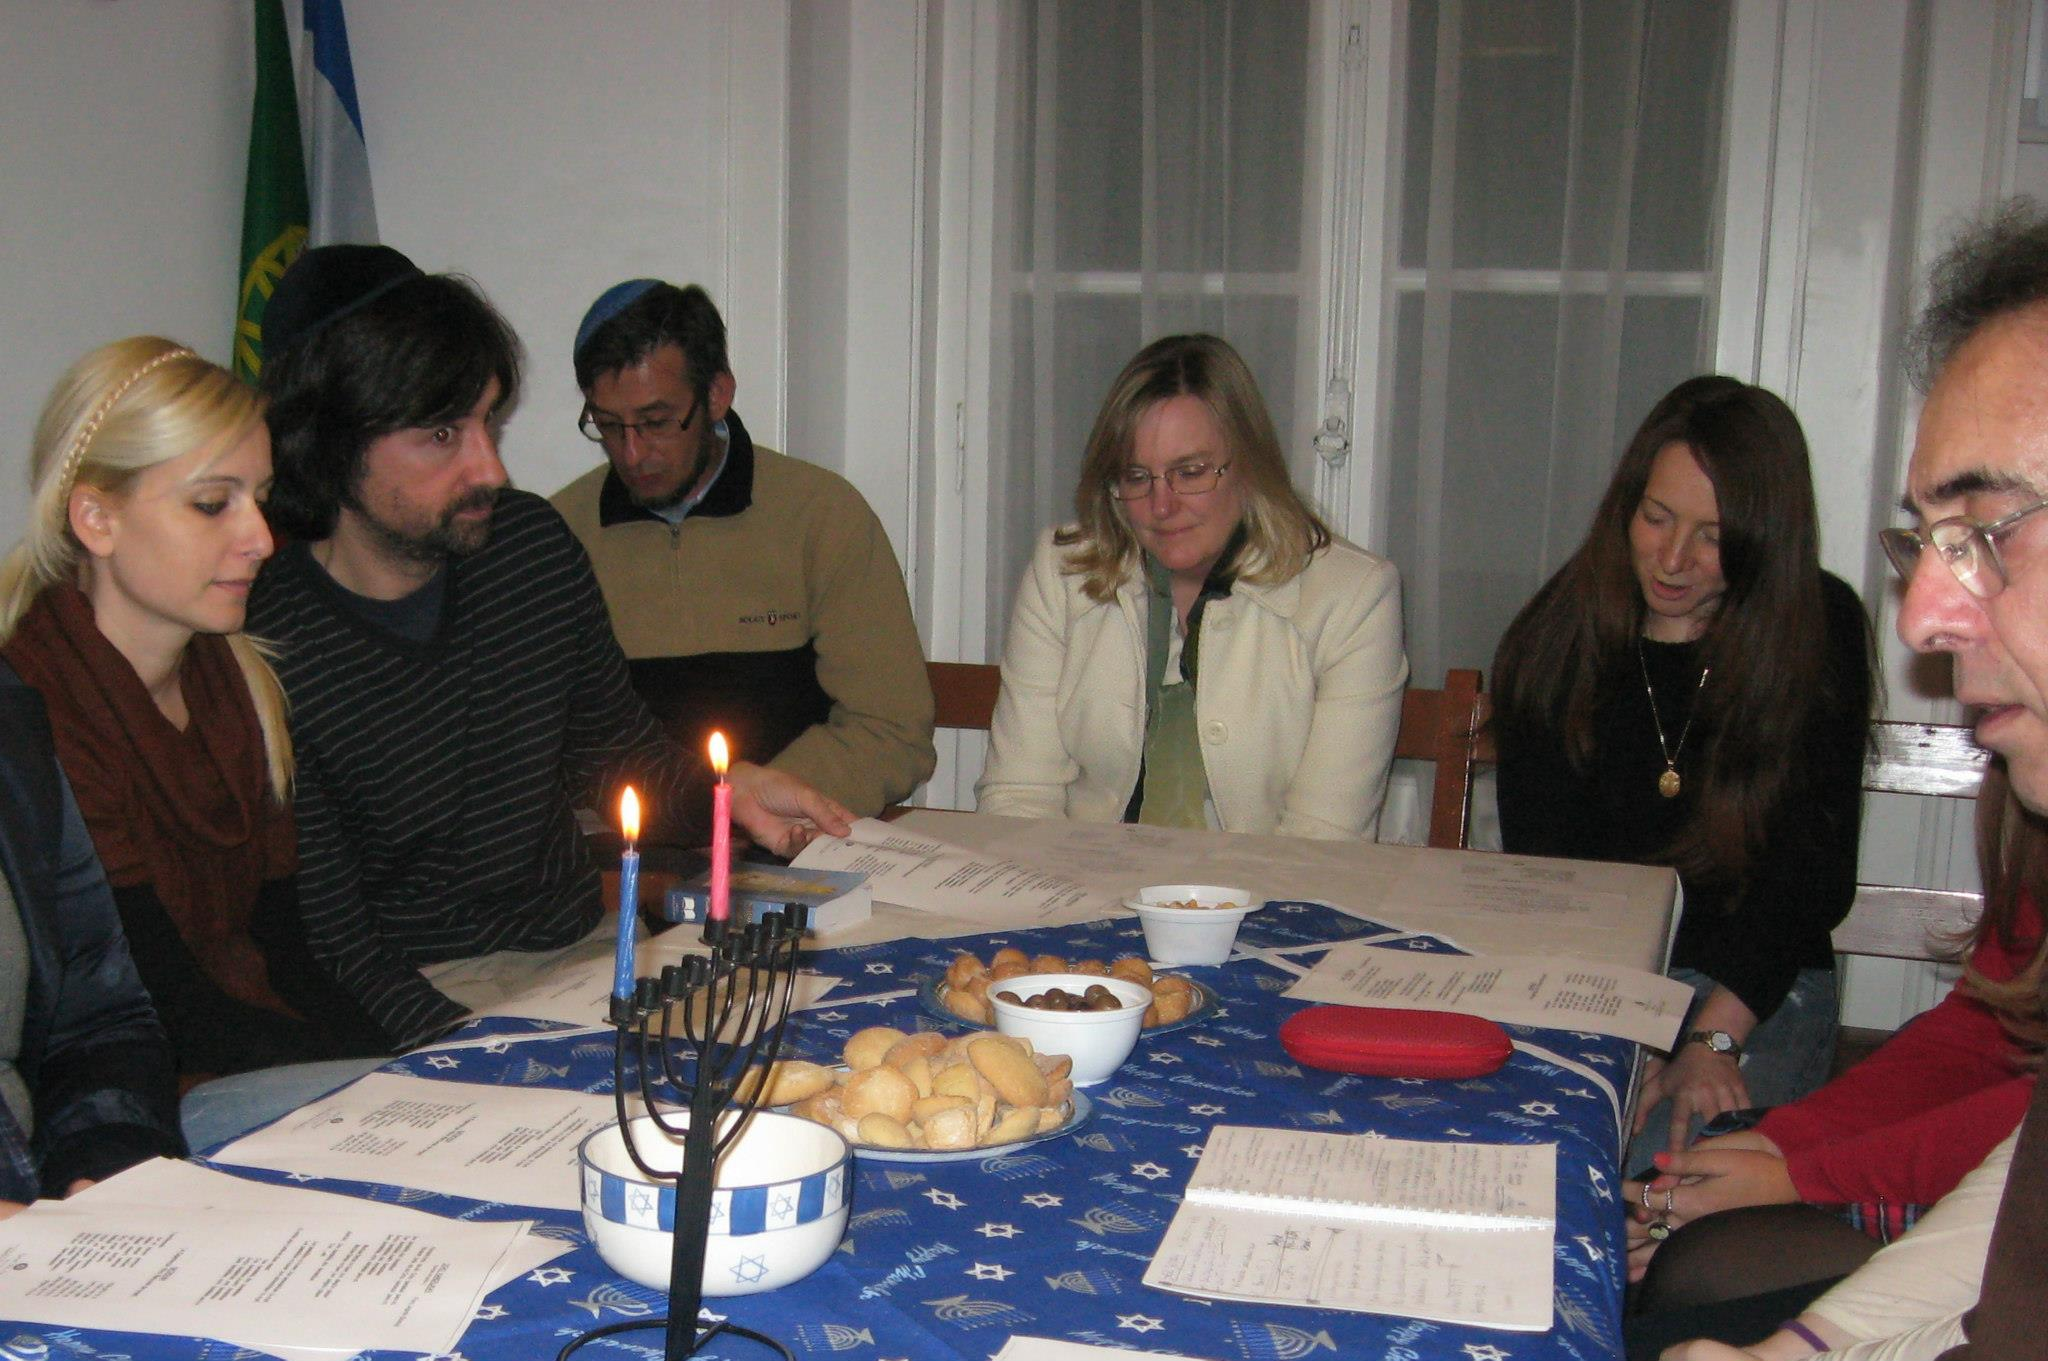 A Hanukkah learning session and celebration in Lisbon